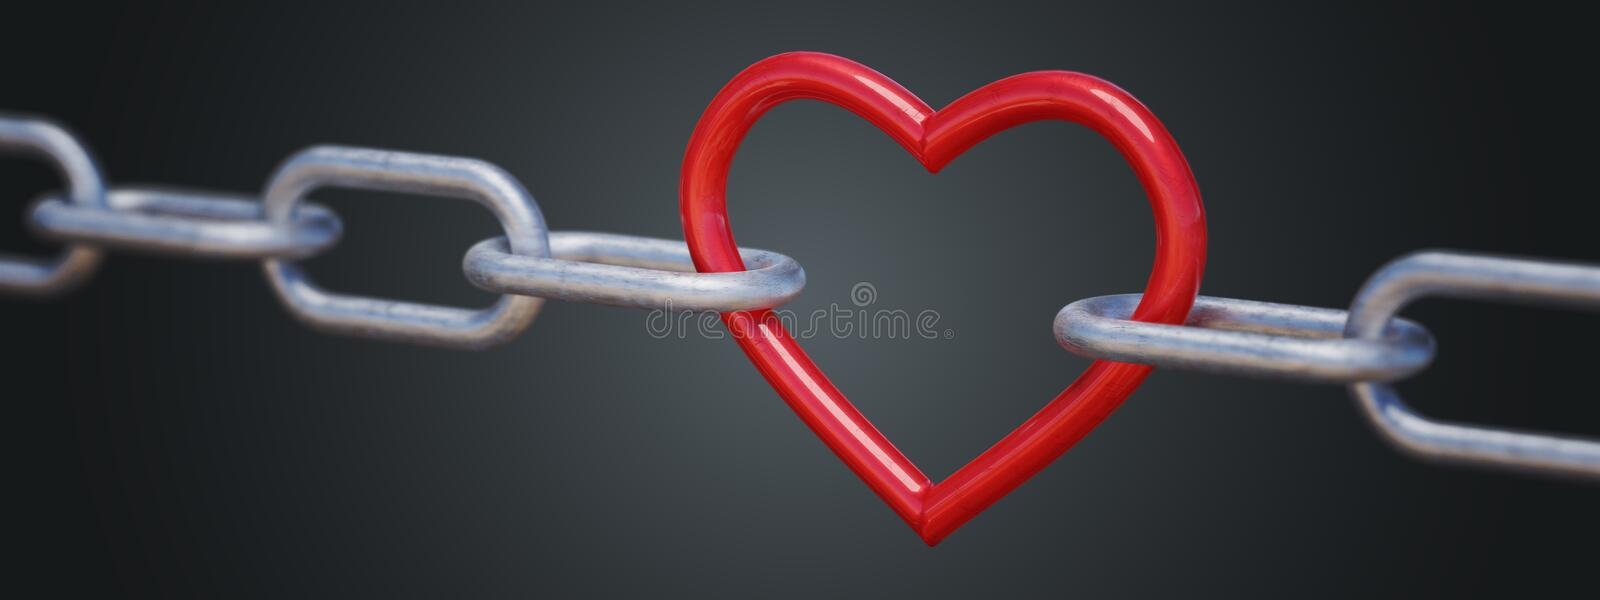 Red metalic heart in chain on black background. 3D rendered illustration stock illustration